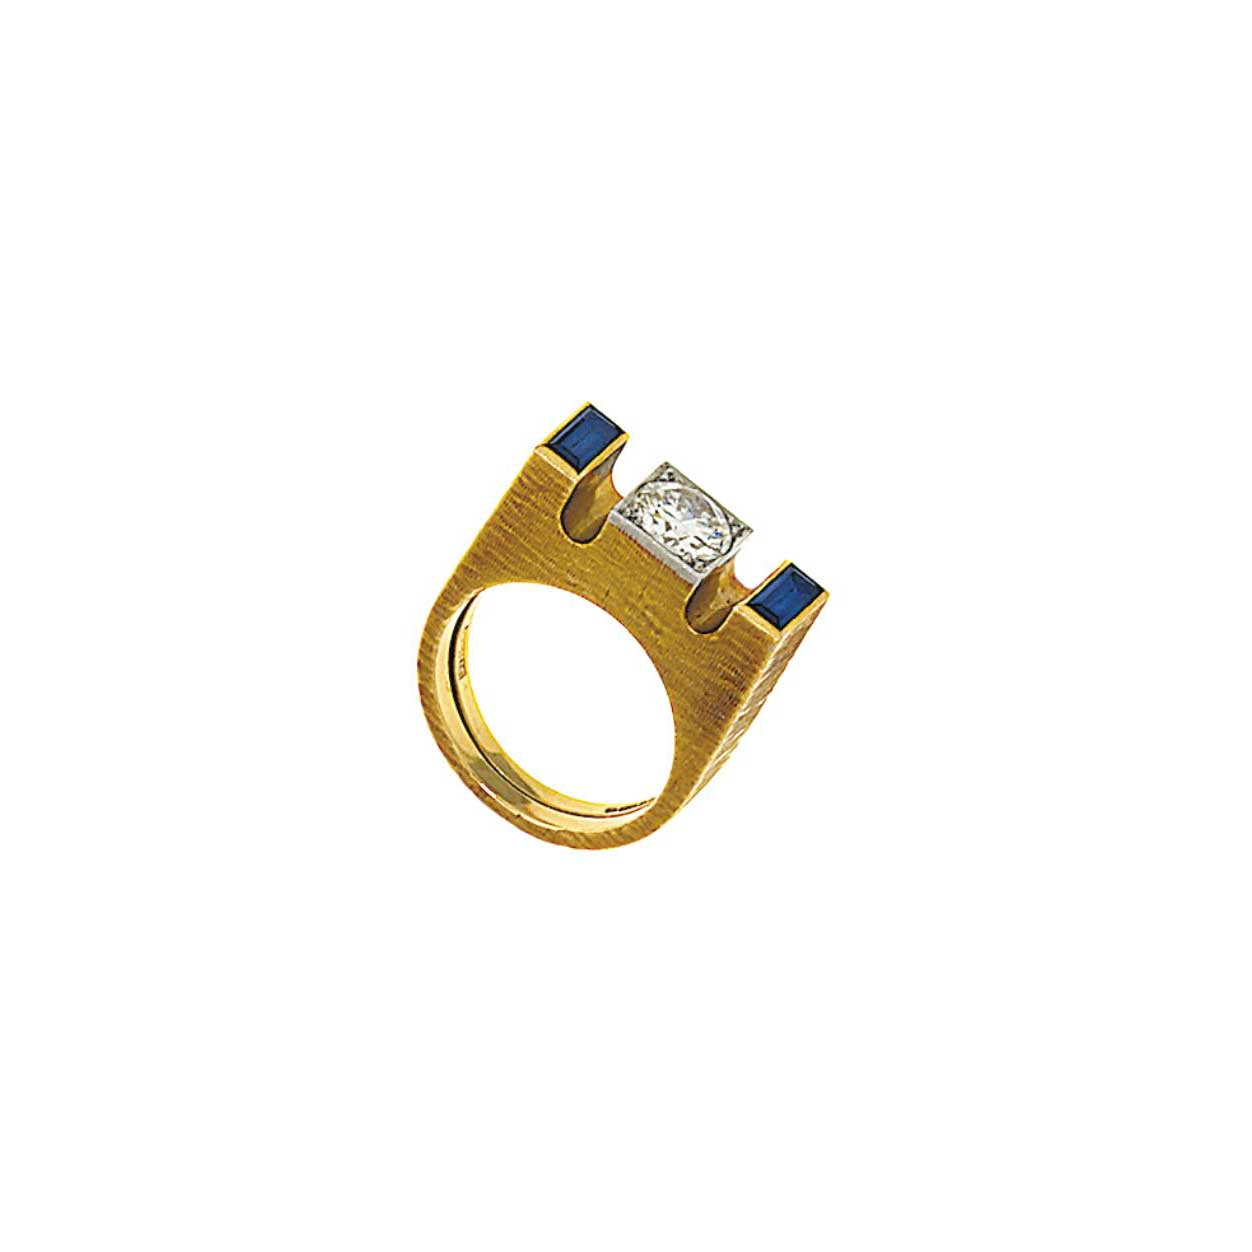 An 18ct gold, diamond and sapphire ring, by Andrew Grima